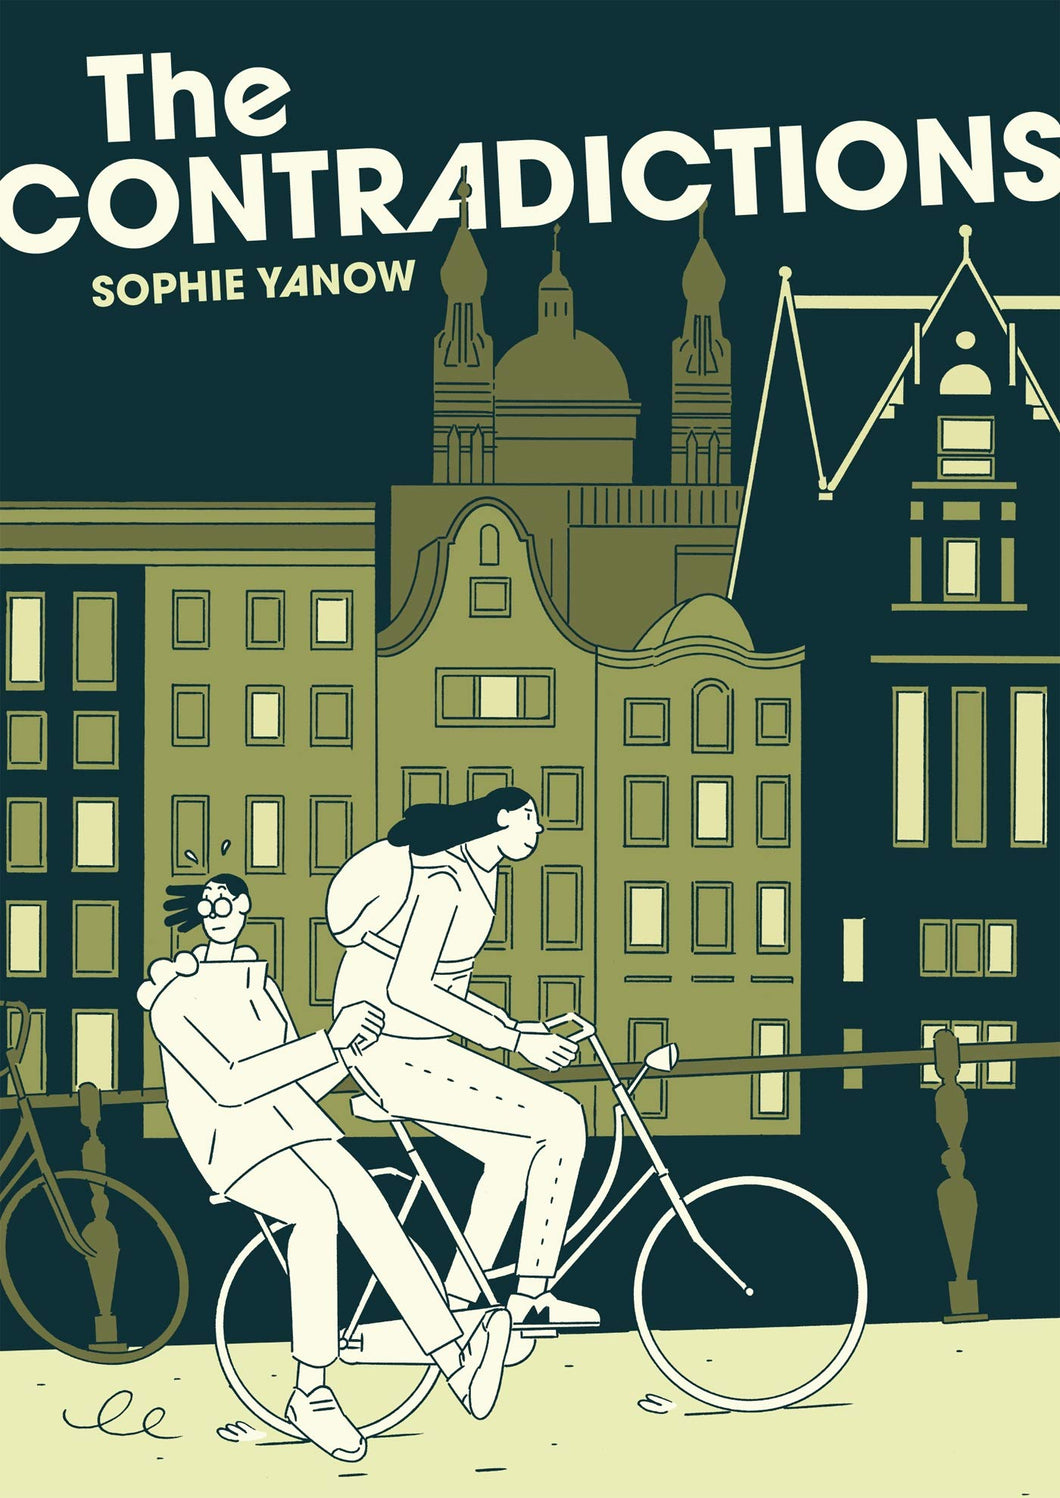 The Contradictions by Sophie Yanow